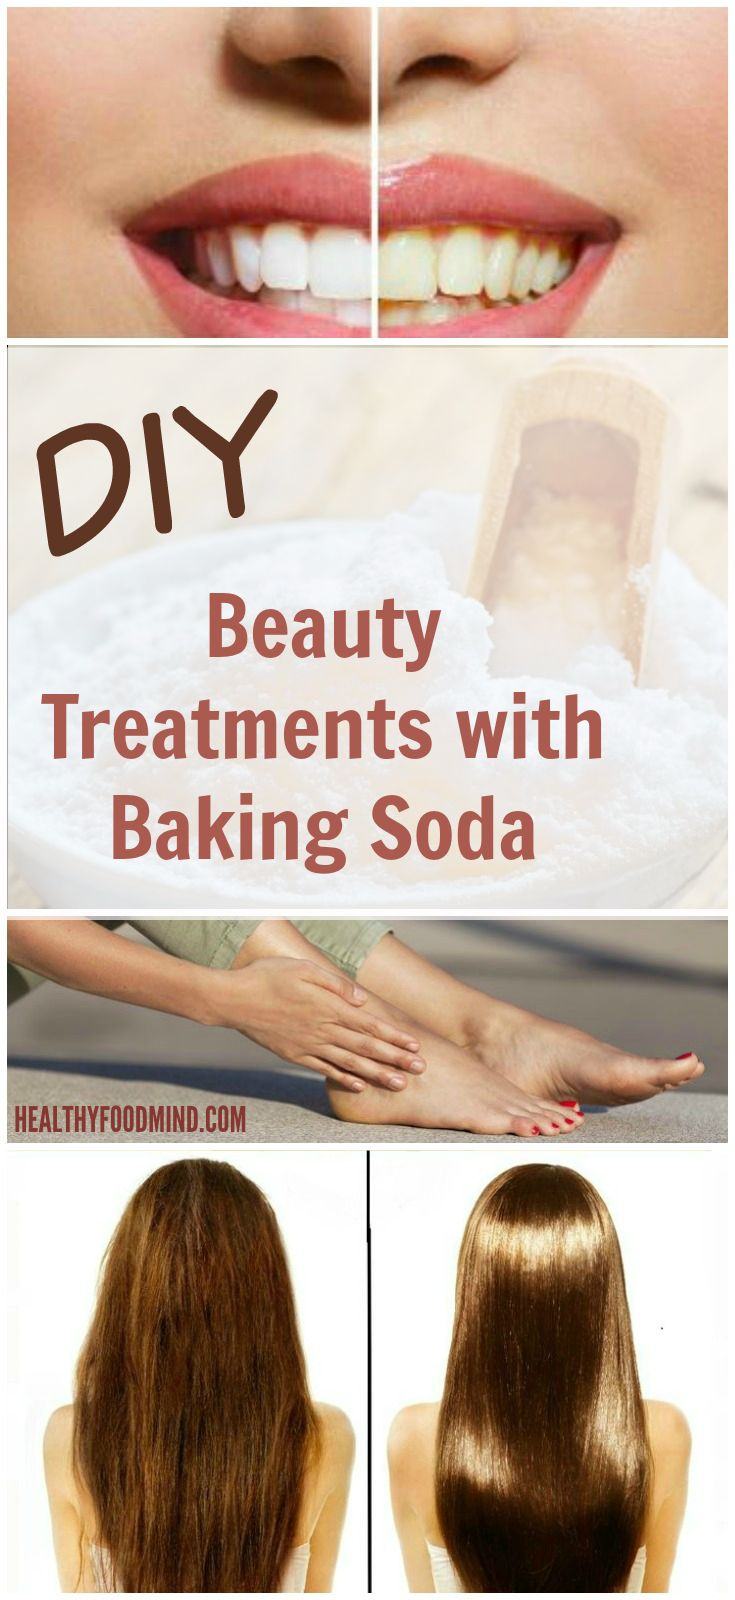 Baking soda uses are countless. This inexpensive product from your kitchen is a true multitasking wonder for a ton of DIY beauty, health and cleaning needs. Today I want to share with you some health and beauty tips with baking soda that are completely natural and extremely effective. Baking soda possesses a very strong anti-inflammatory…